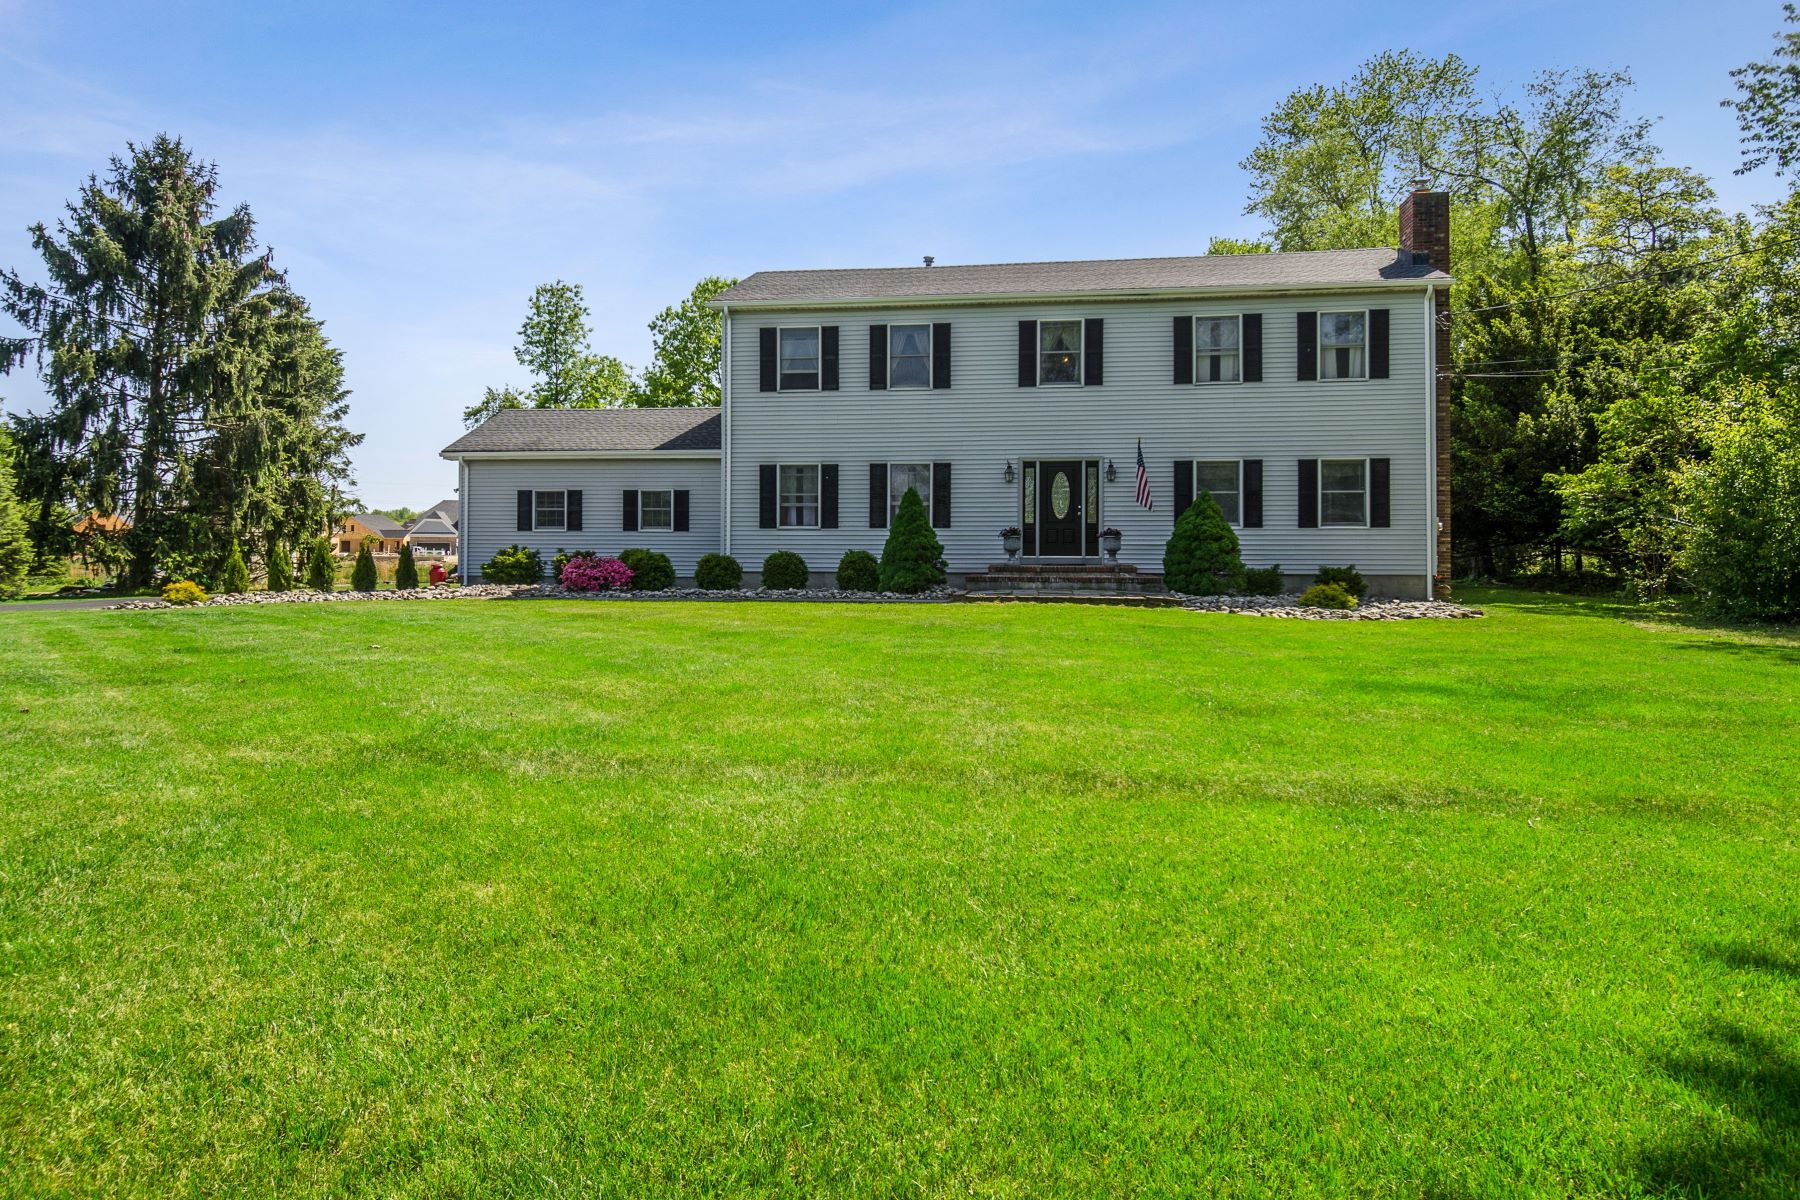 In Robbinsville, a Colonial at Its Best 147 Hankins Road, Hightstown, New Jersey 08520 Vereinigte Staaten